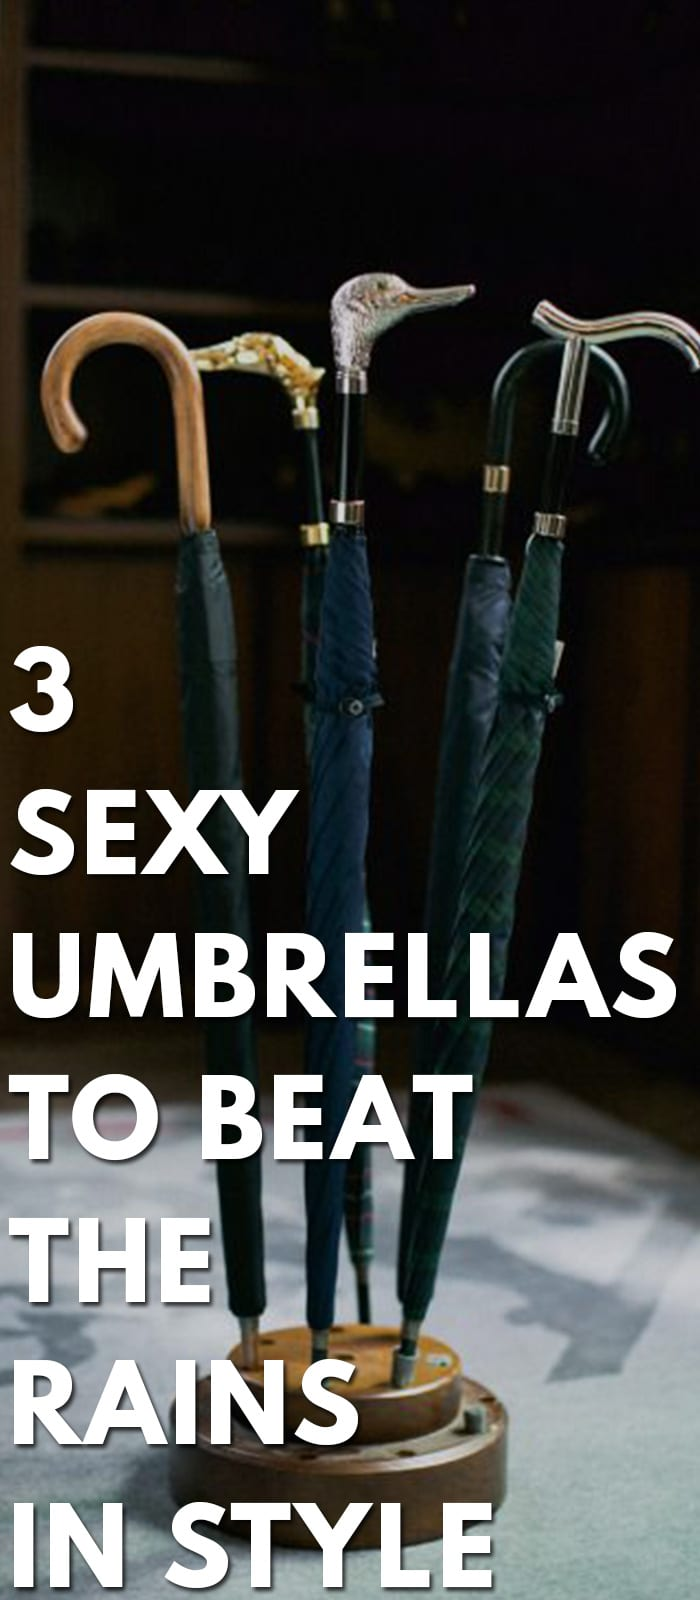 3-Sexy-Umbrellas-to-Beat-The-Rains-In-Style.............